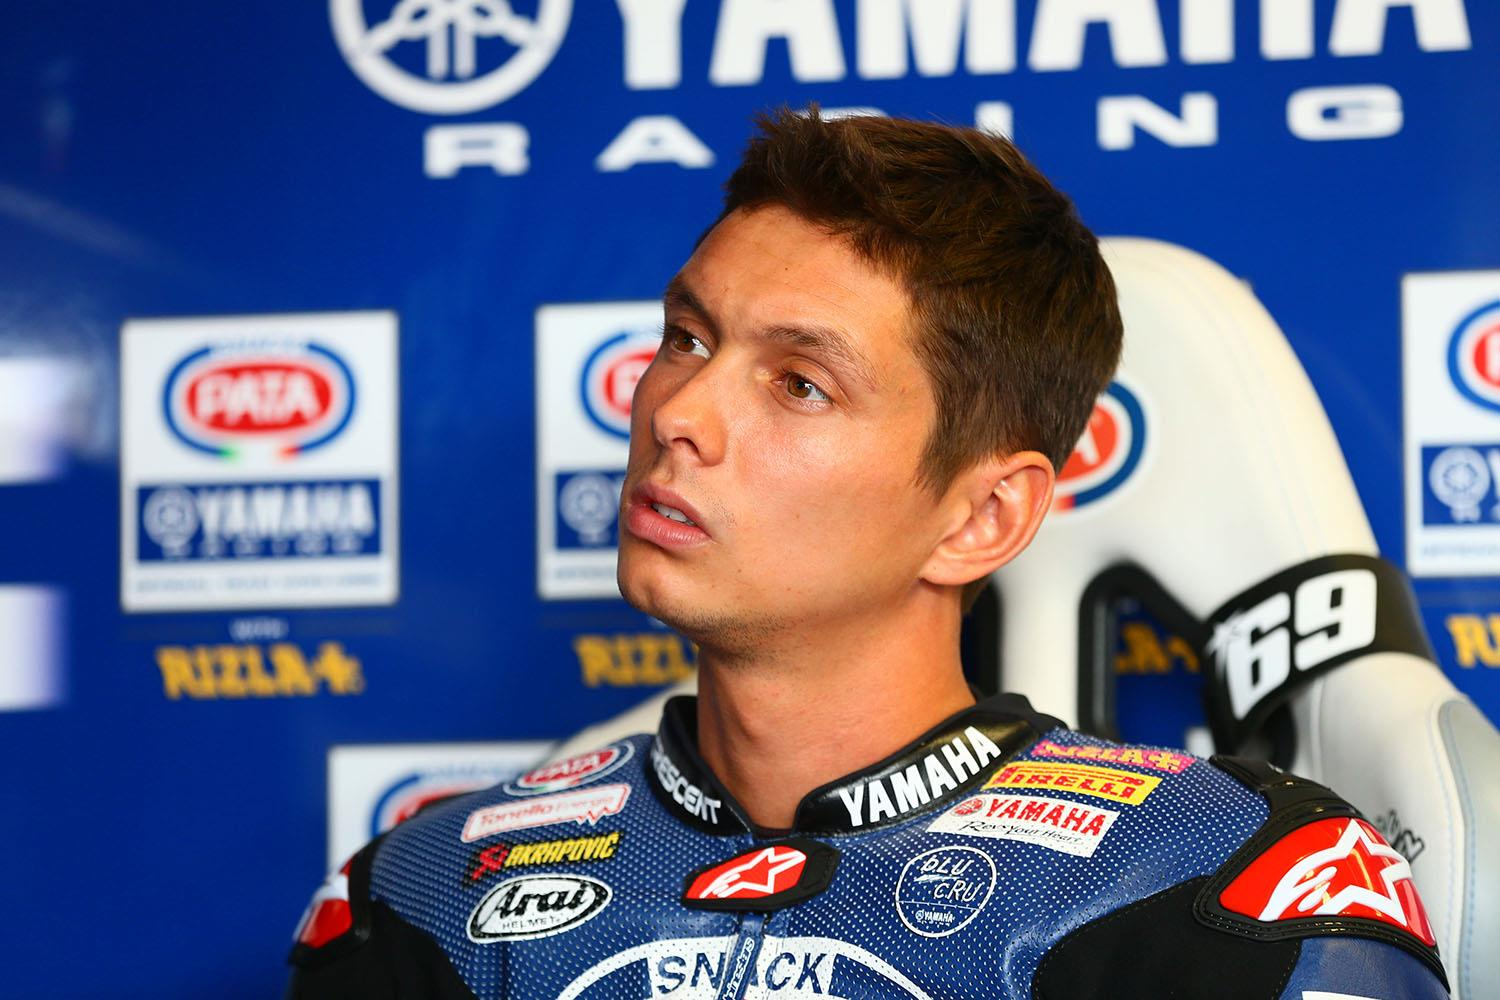 Michael van der Mark to Replace Valentino Rossi at Aragon MotoGP